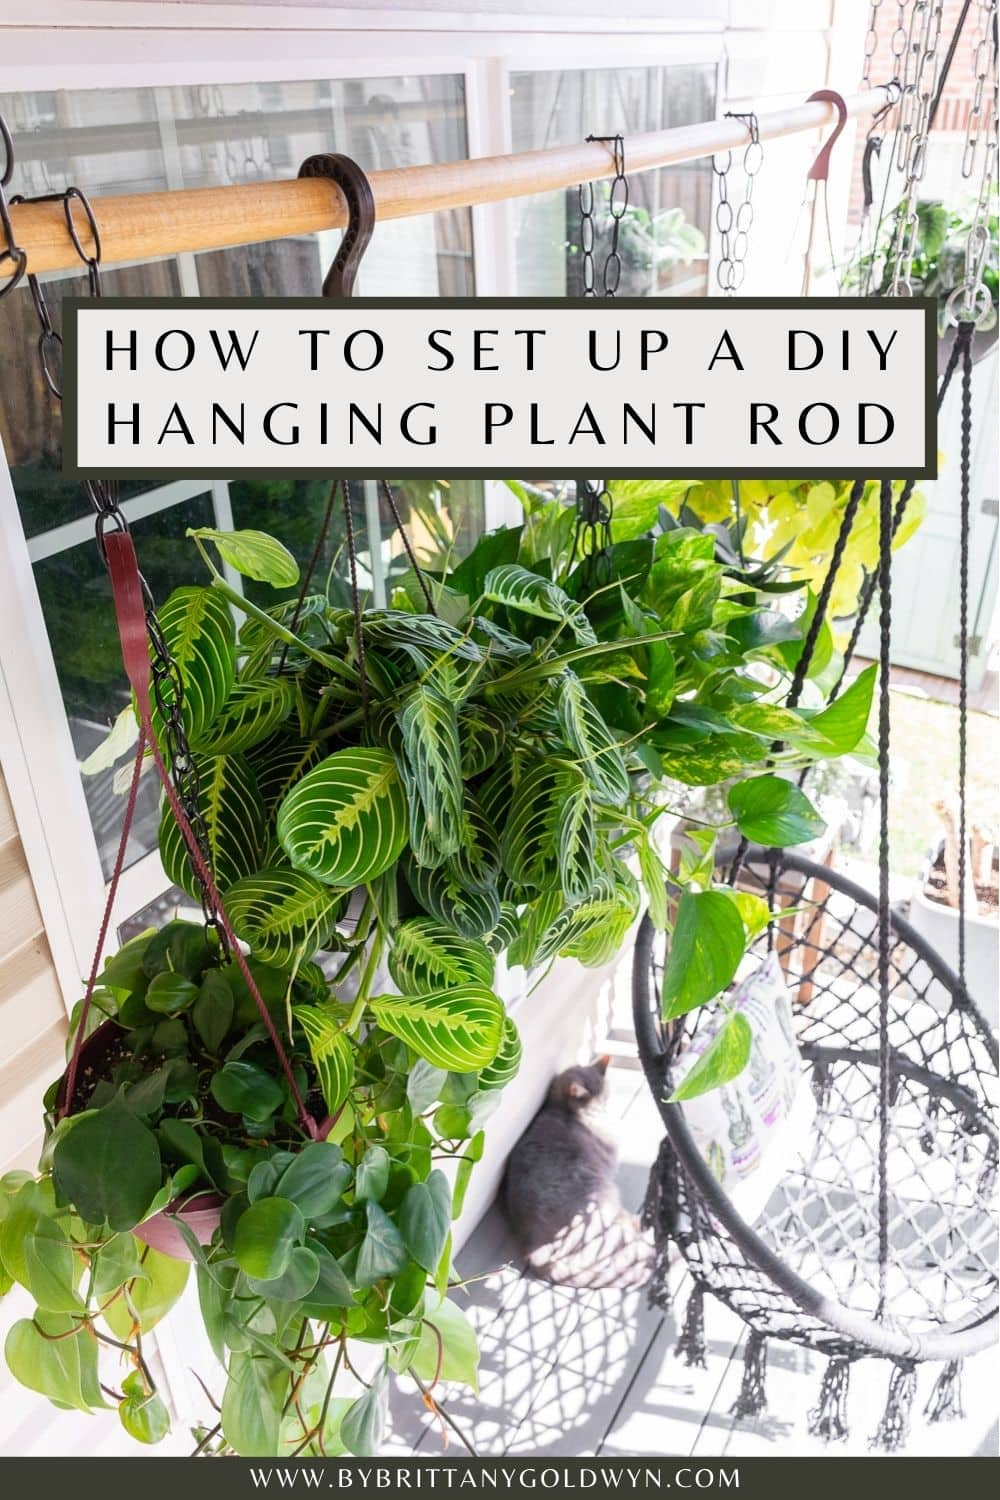 pinnable graphic with a photo of hanging plants and text about how to set up a DIY hanging plant rod